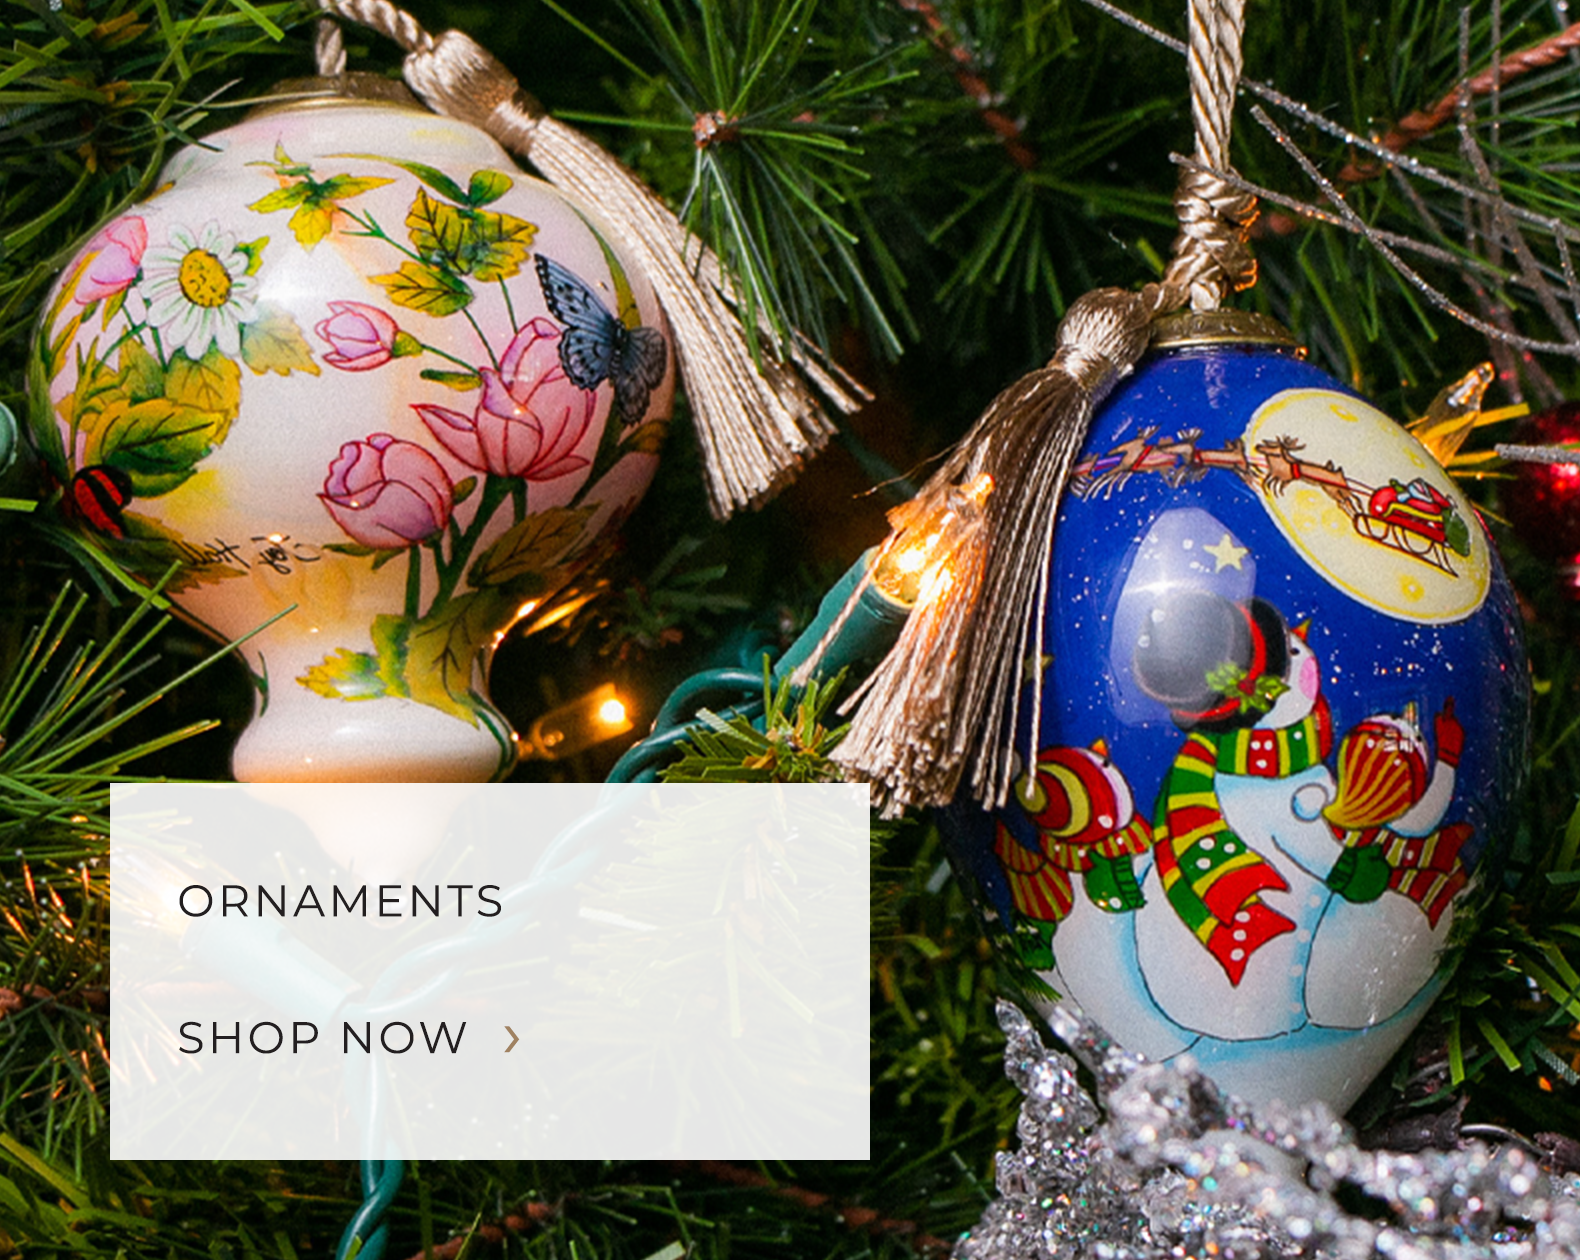 Ornaments - Christopher Radko, Old World Christmas, Inner Beauty Gifts, Kat & Annie, Coton Colors